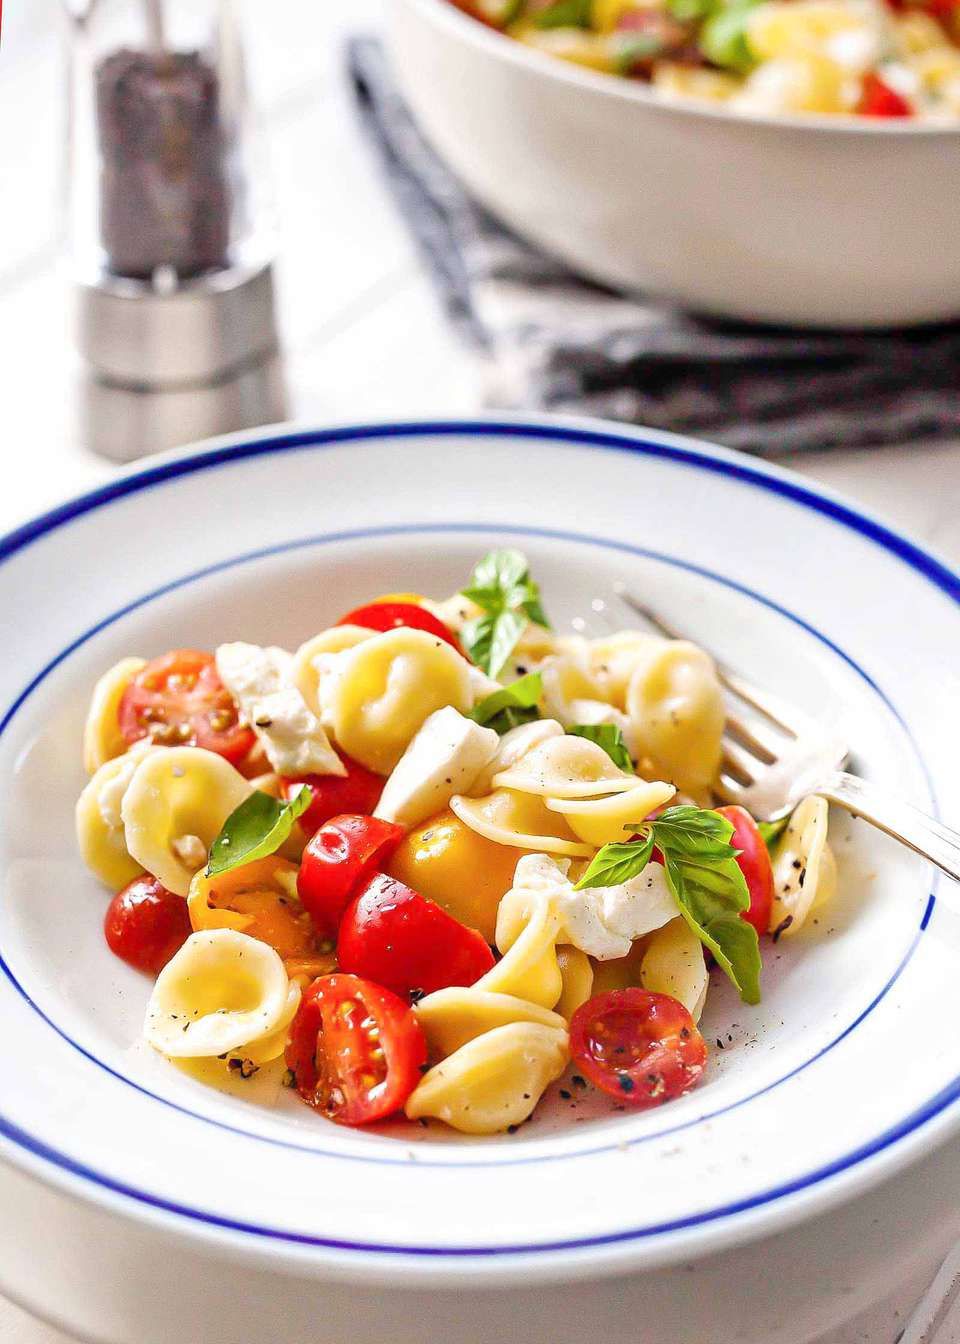 Caprese Salad with Cherry Tomatoes - bowl of caprese salad with pasta